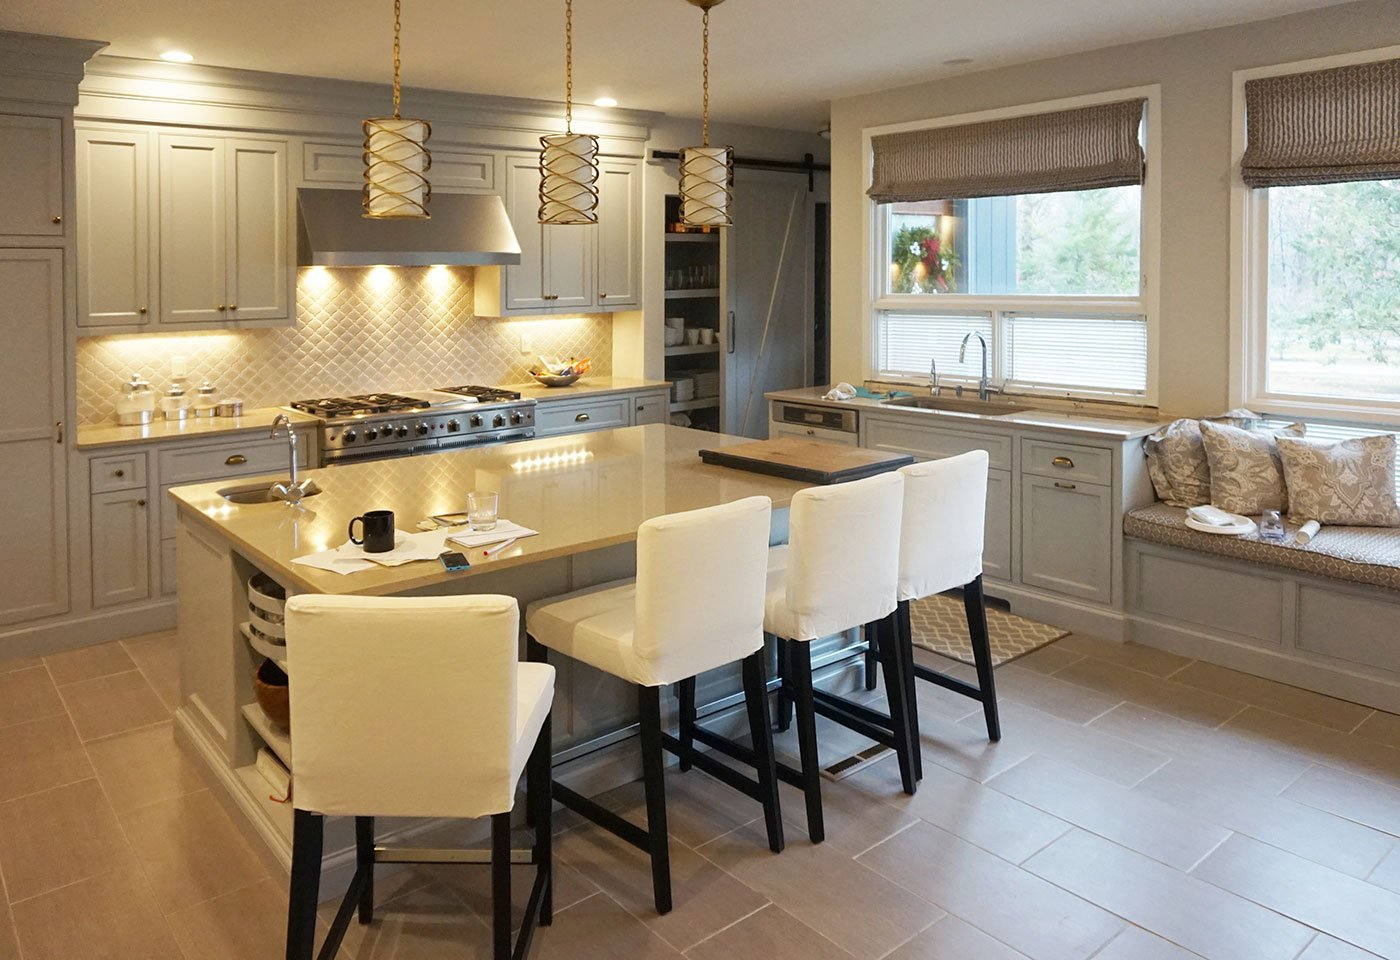 Kitchen - basement remodel by in house design - construction build firm in RI